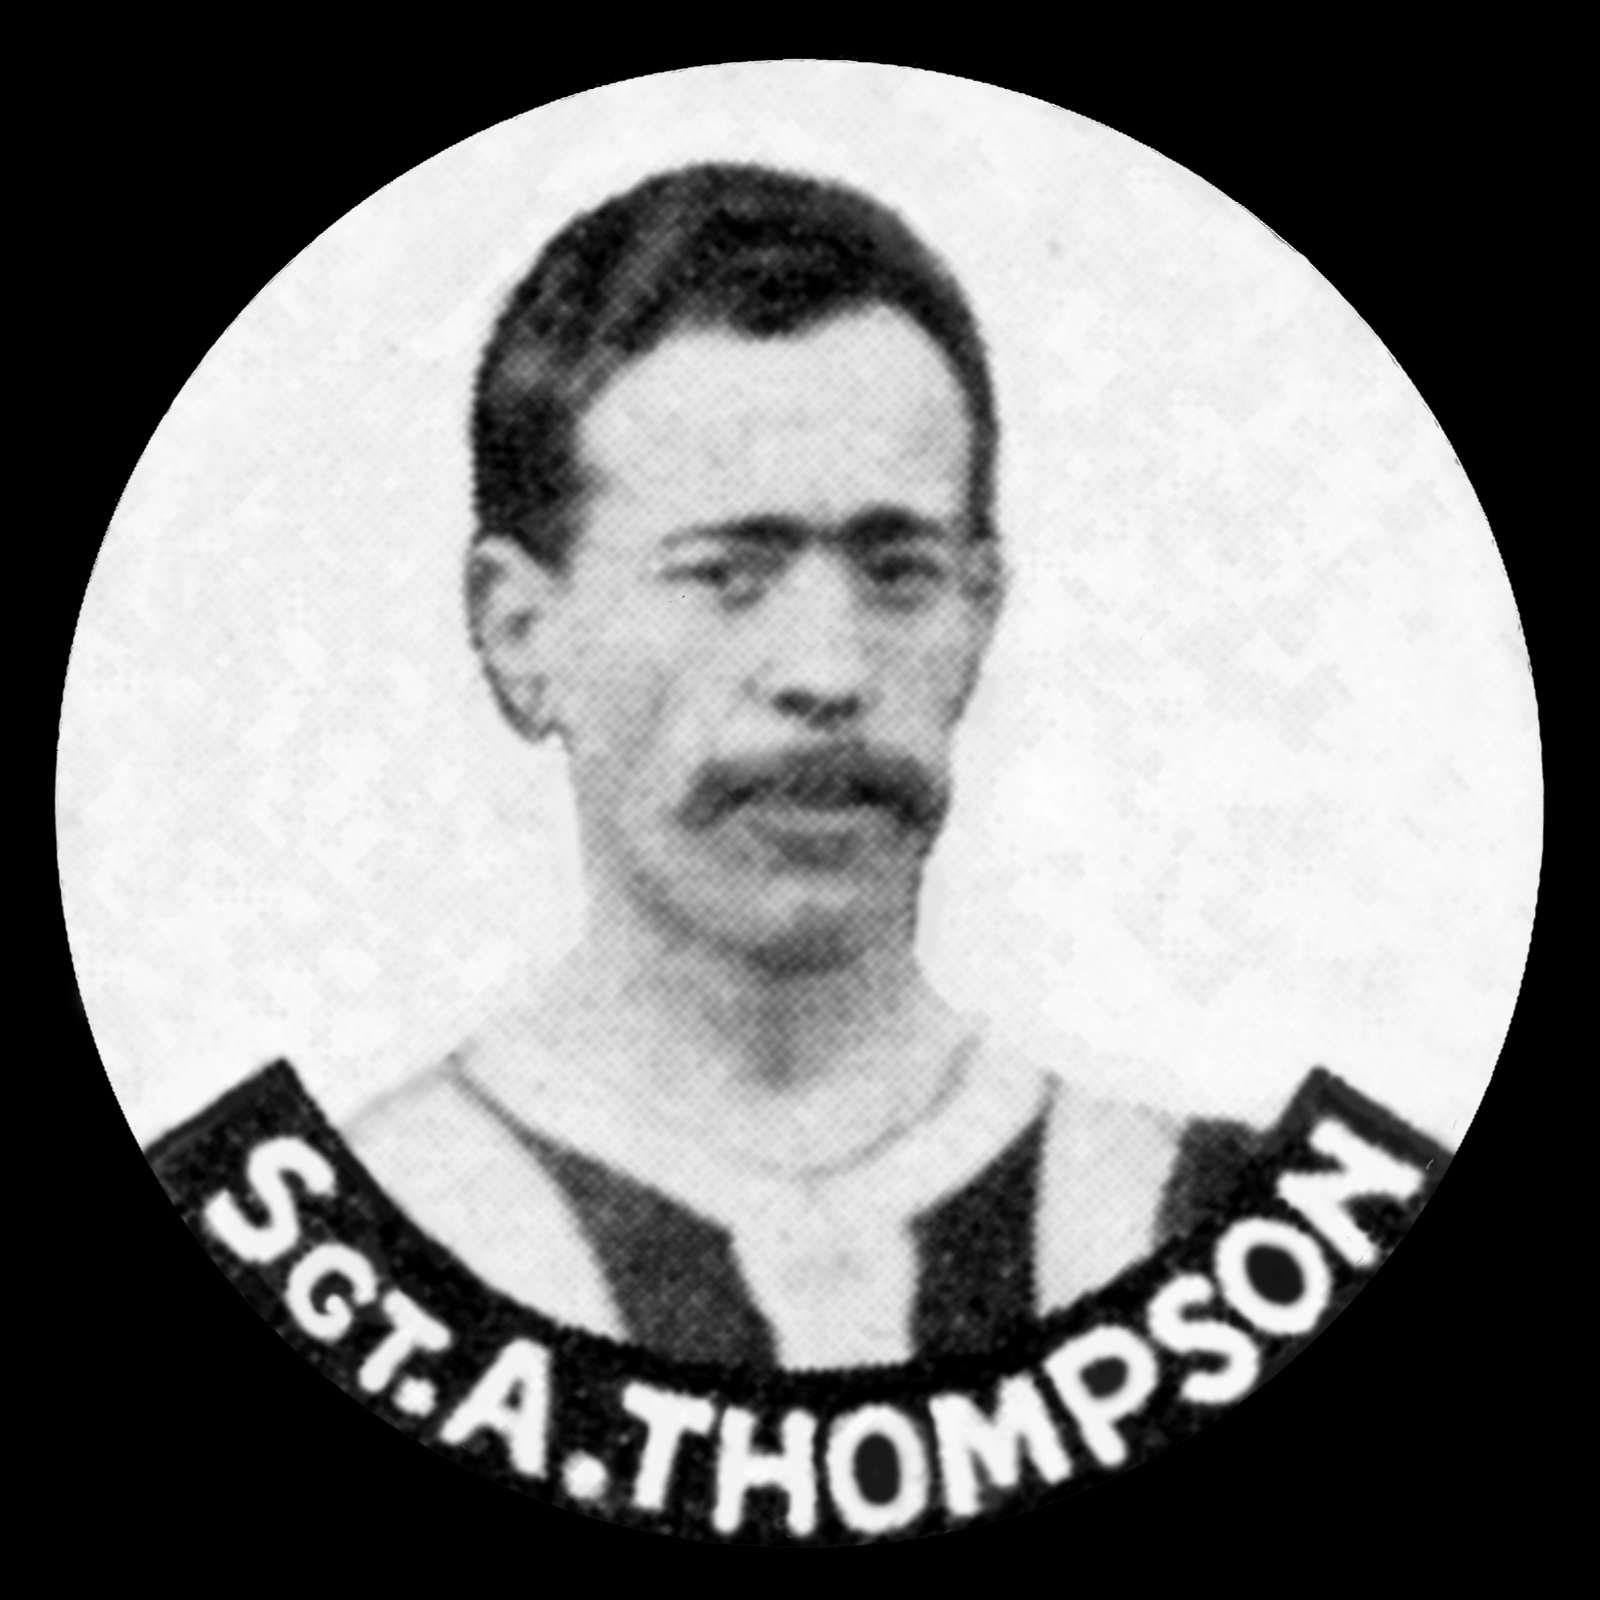 THOMPSON Arthur